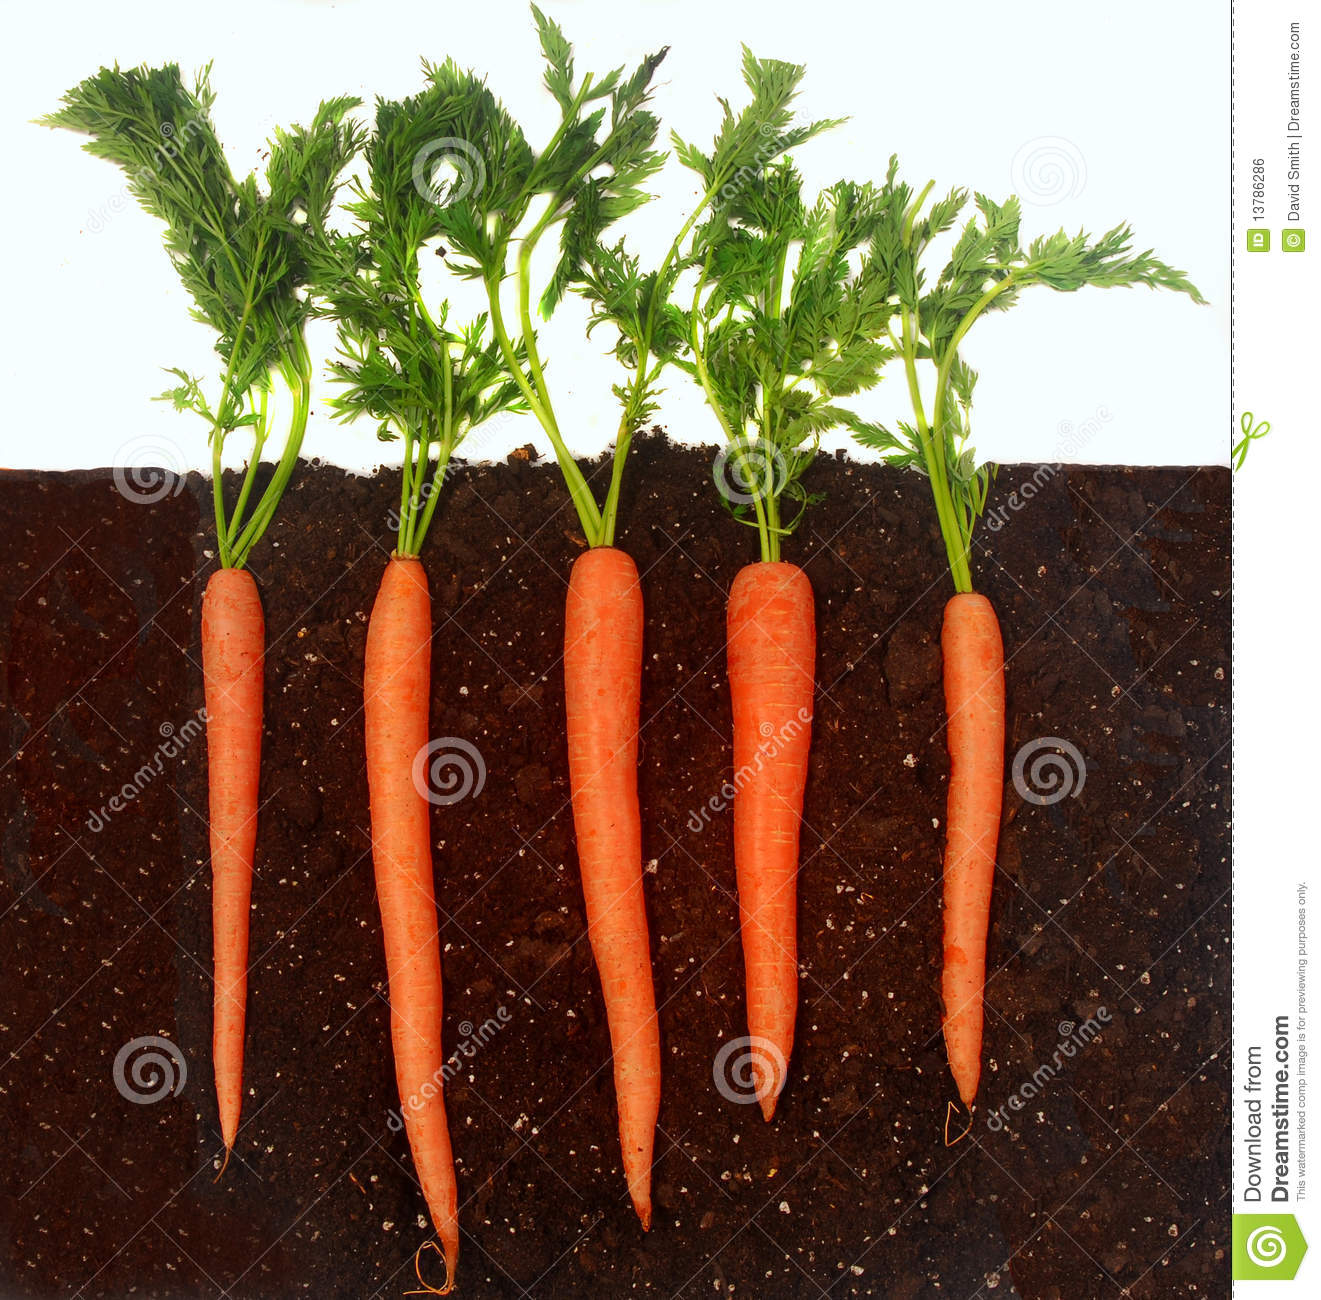 Carrots Growing In Soil Royalty Free Stock Image Image 13786286